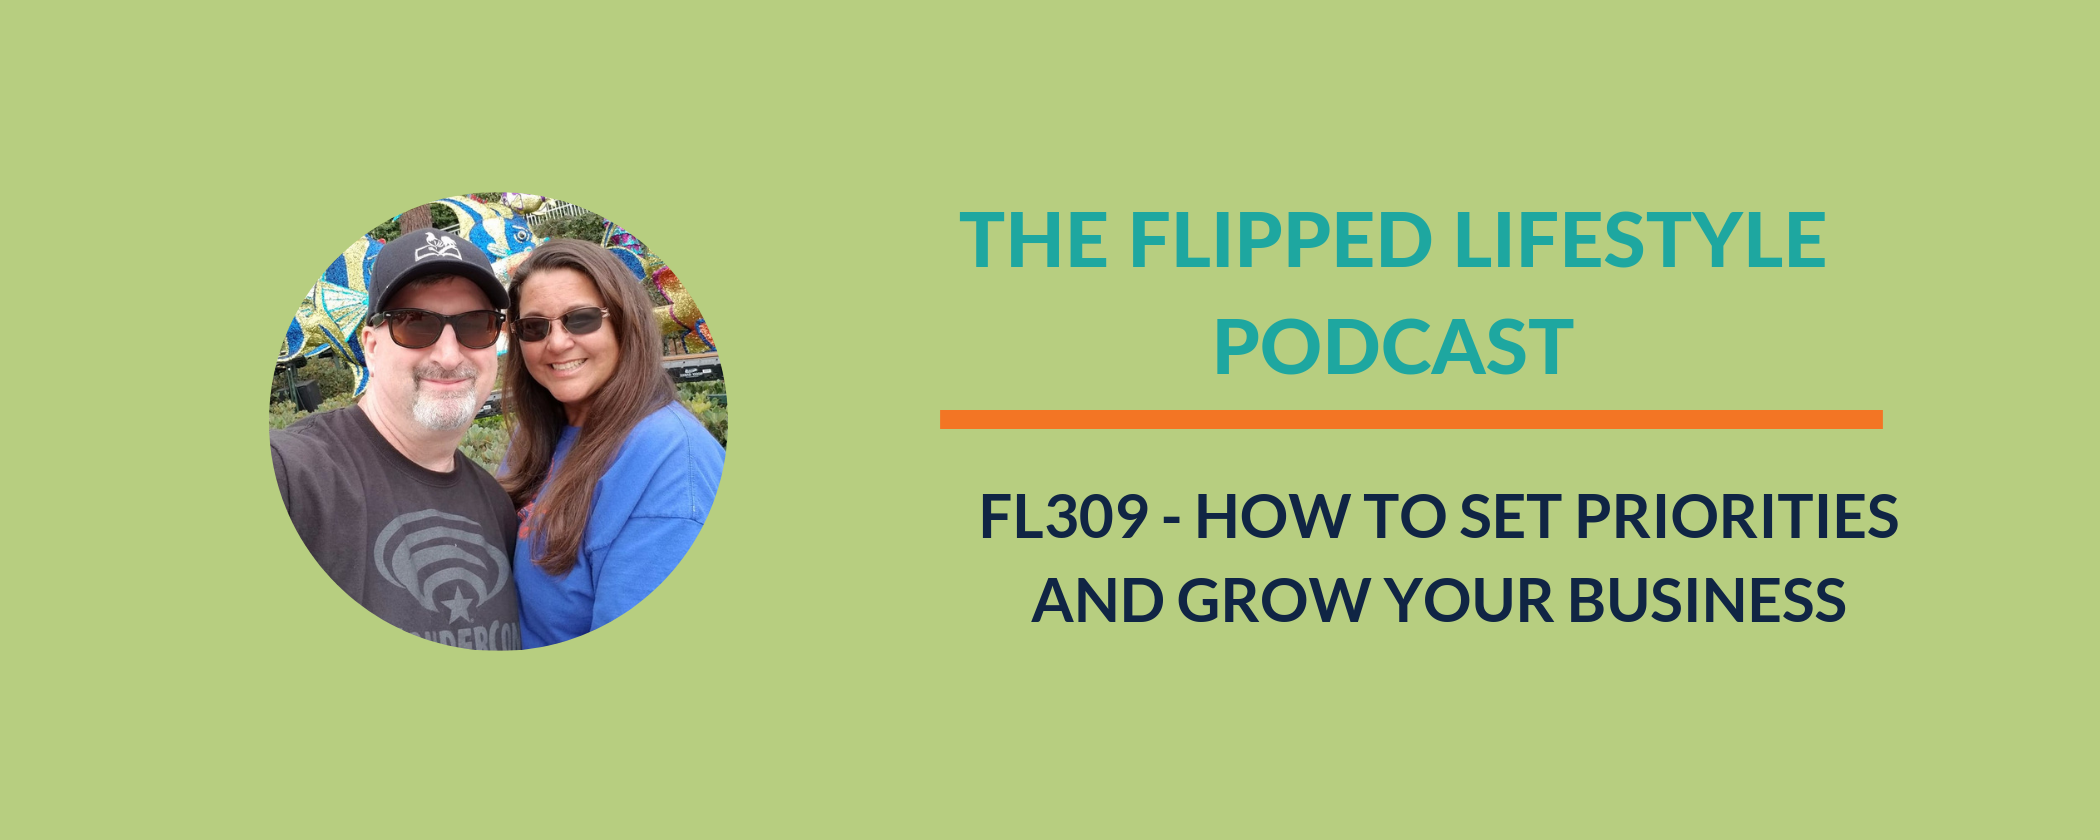 EARLY PODCAST: FL309 - How To Set Priorities and Grow Your Business